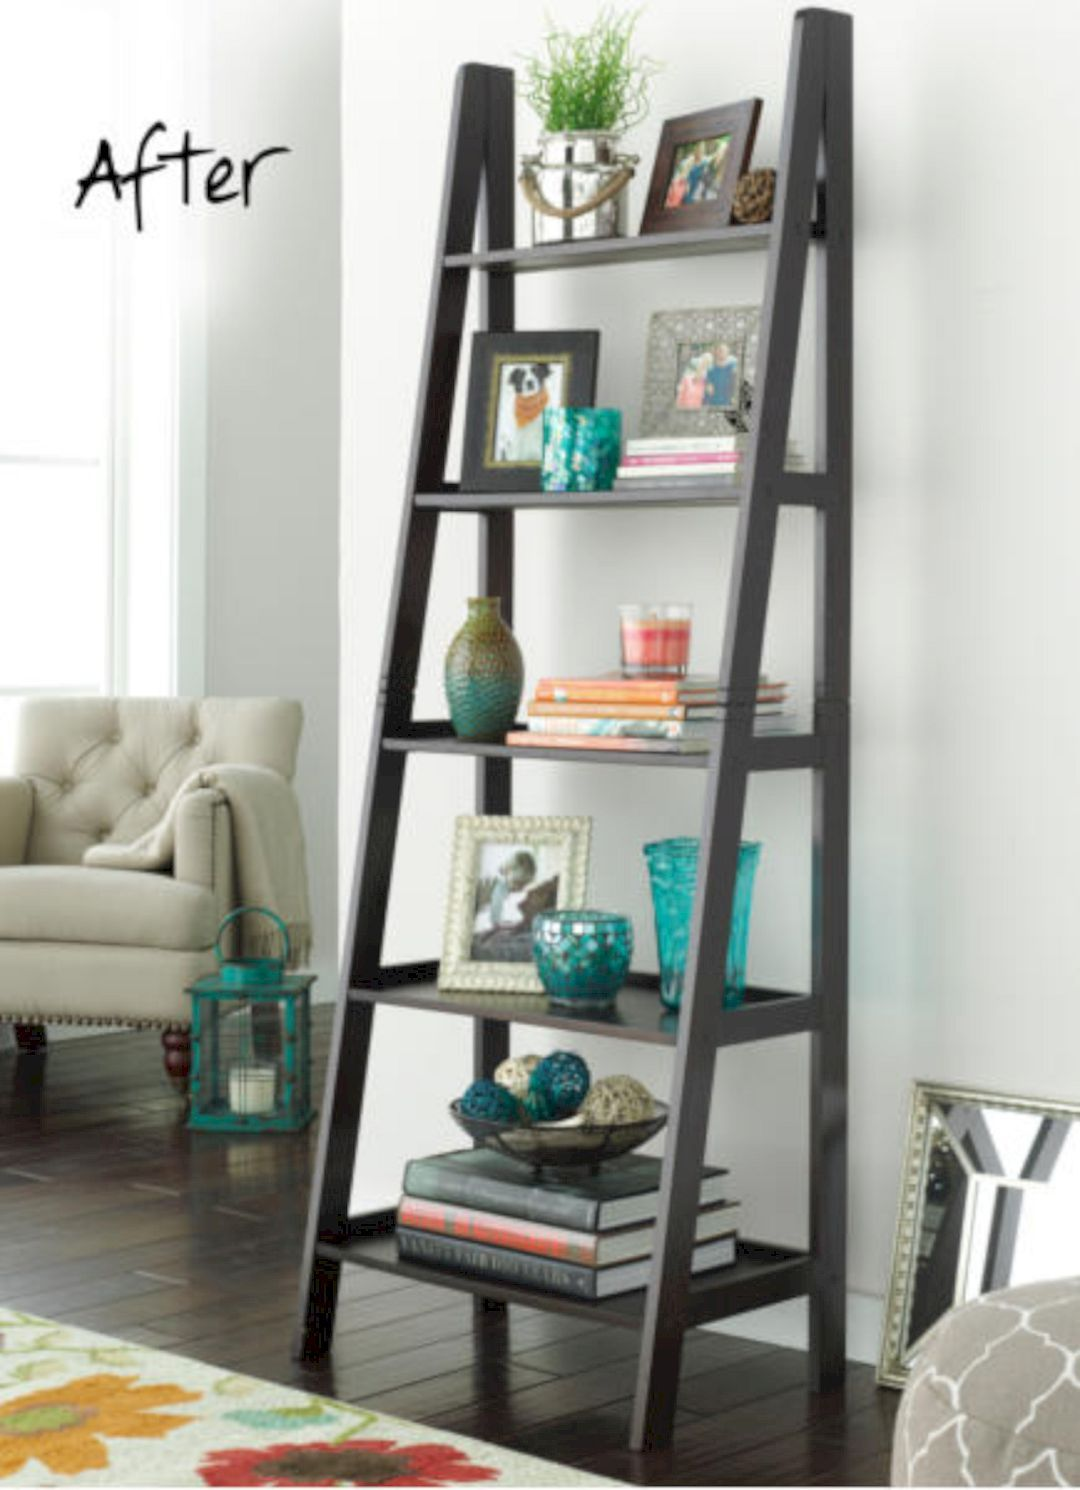 The Long Brick House A Retirement House With A Giant Bookshelf And Thick Brick Wall Ladder Shelf Decor Decor Bookshelf Decor